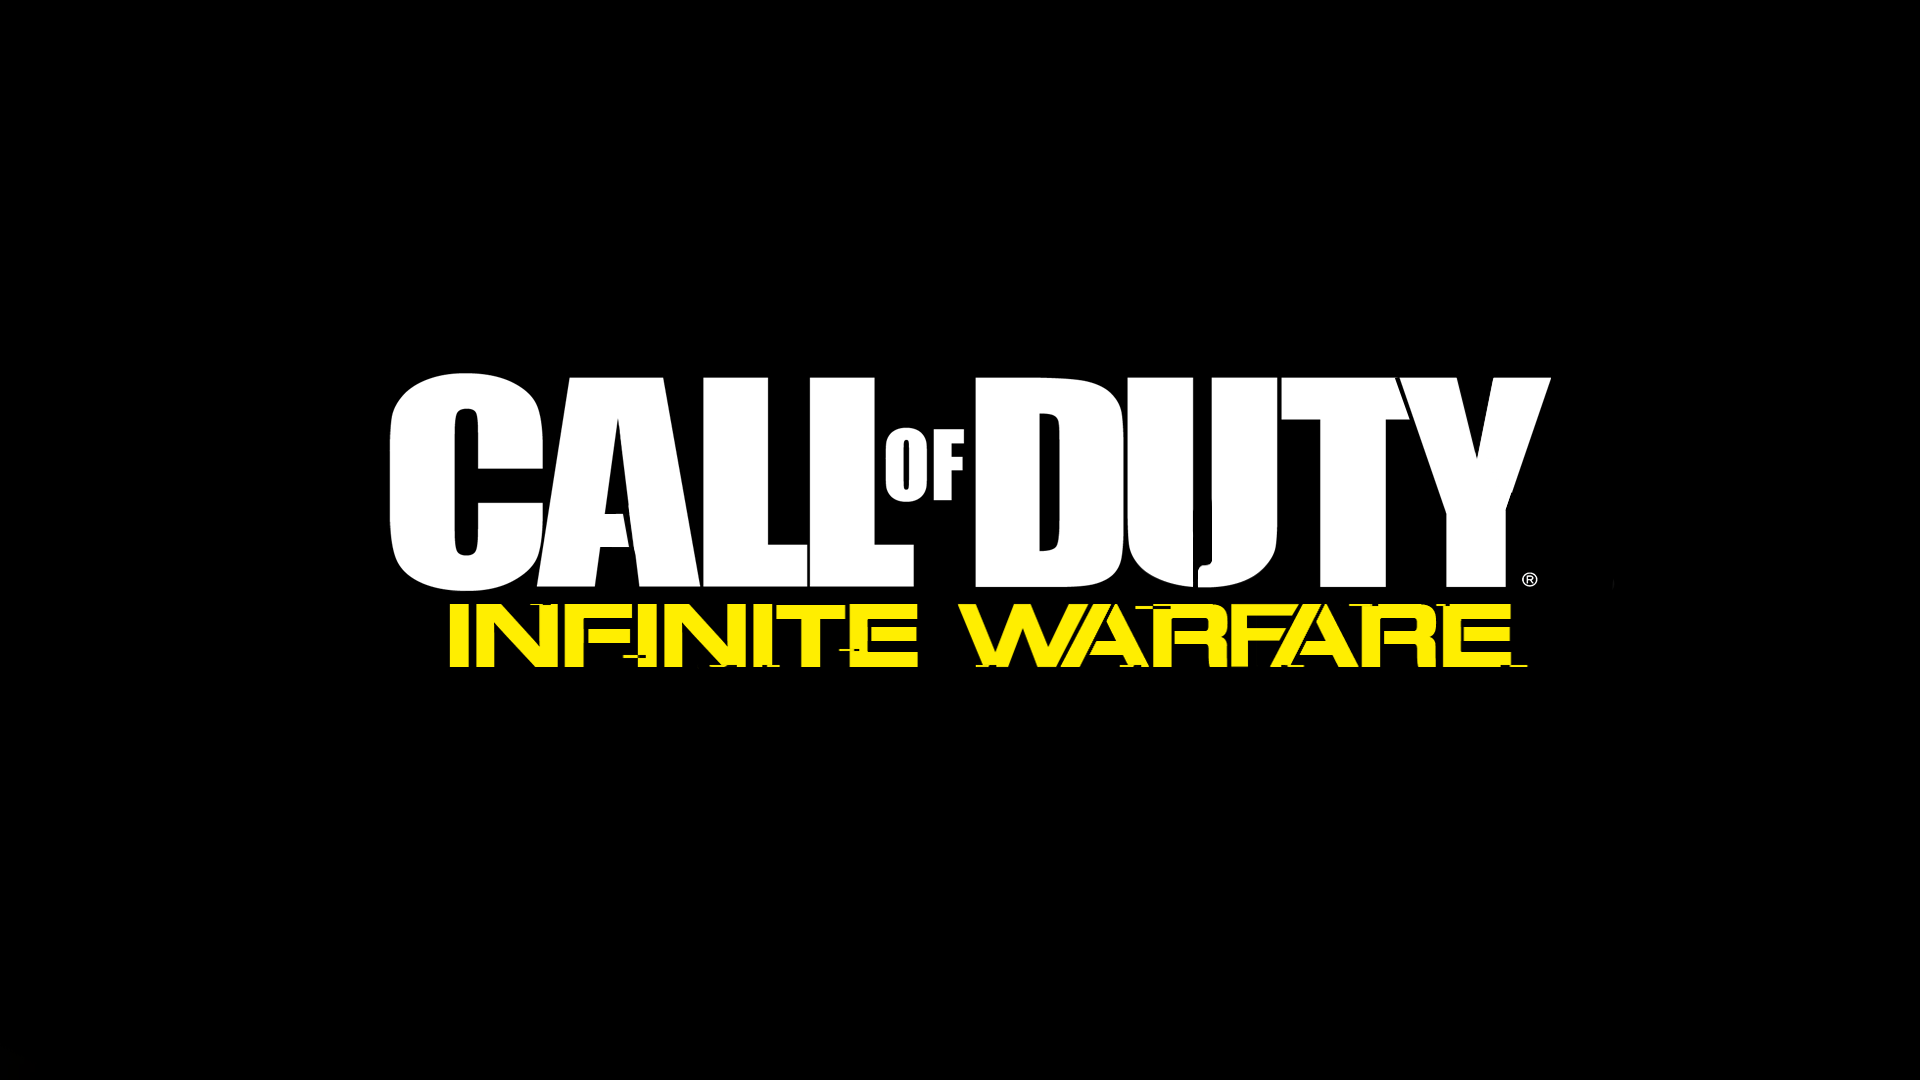 call of duty infinite warfare logo wallpaper 58065 call of duty logo maker call of duty logo font